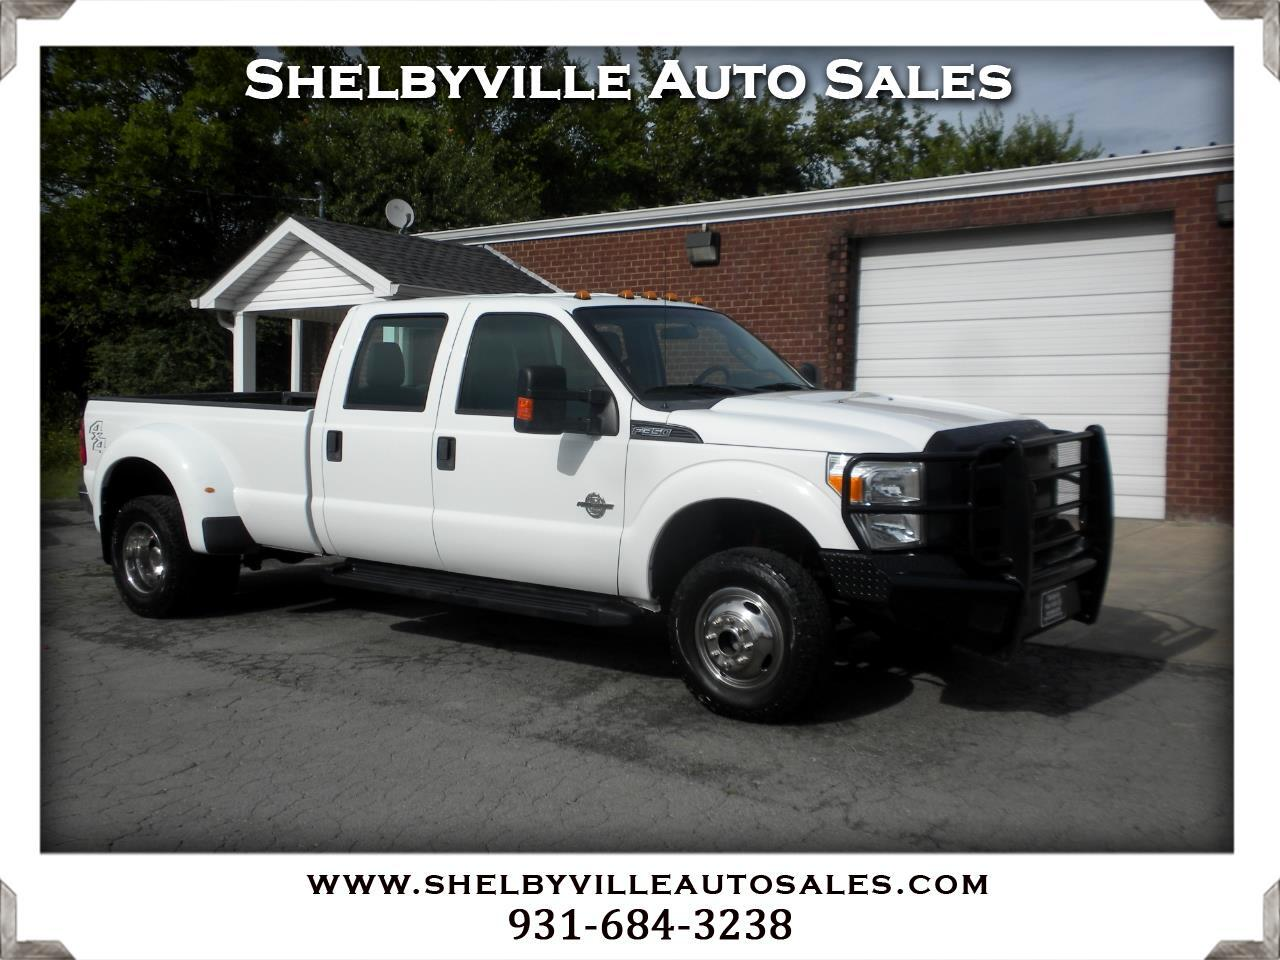 2013 Ford Super Duty F-350 DRW 4X4 Crew Cab XL